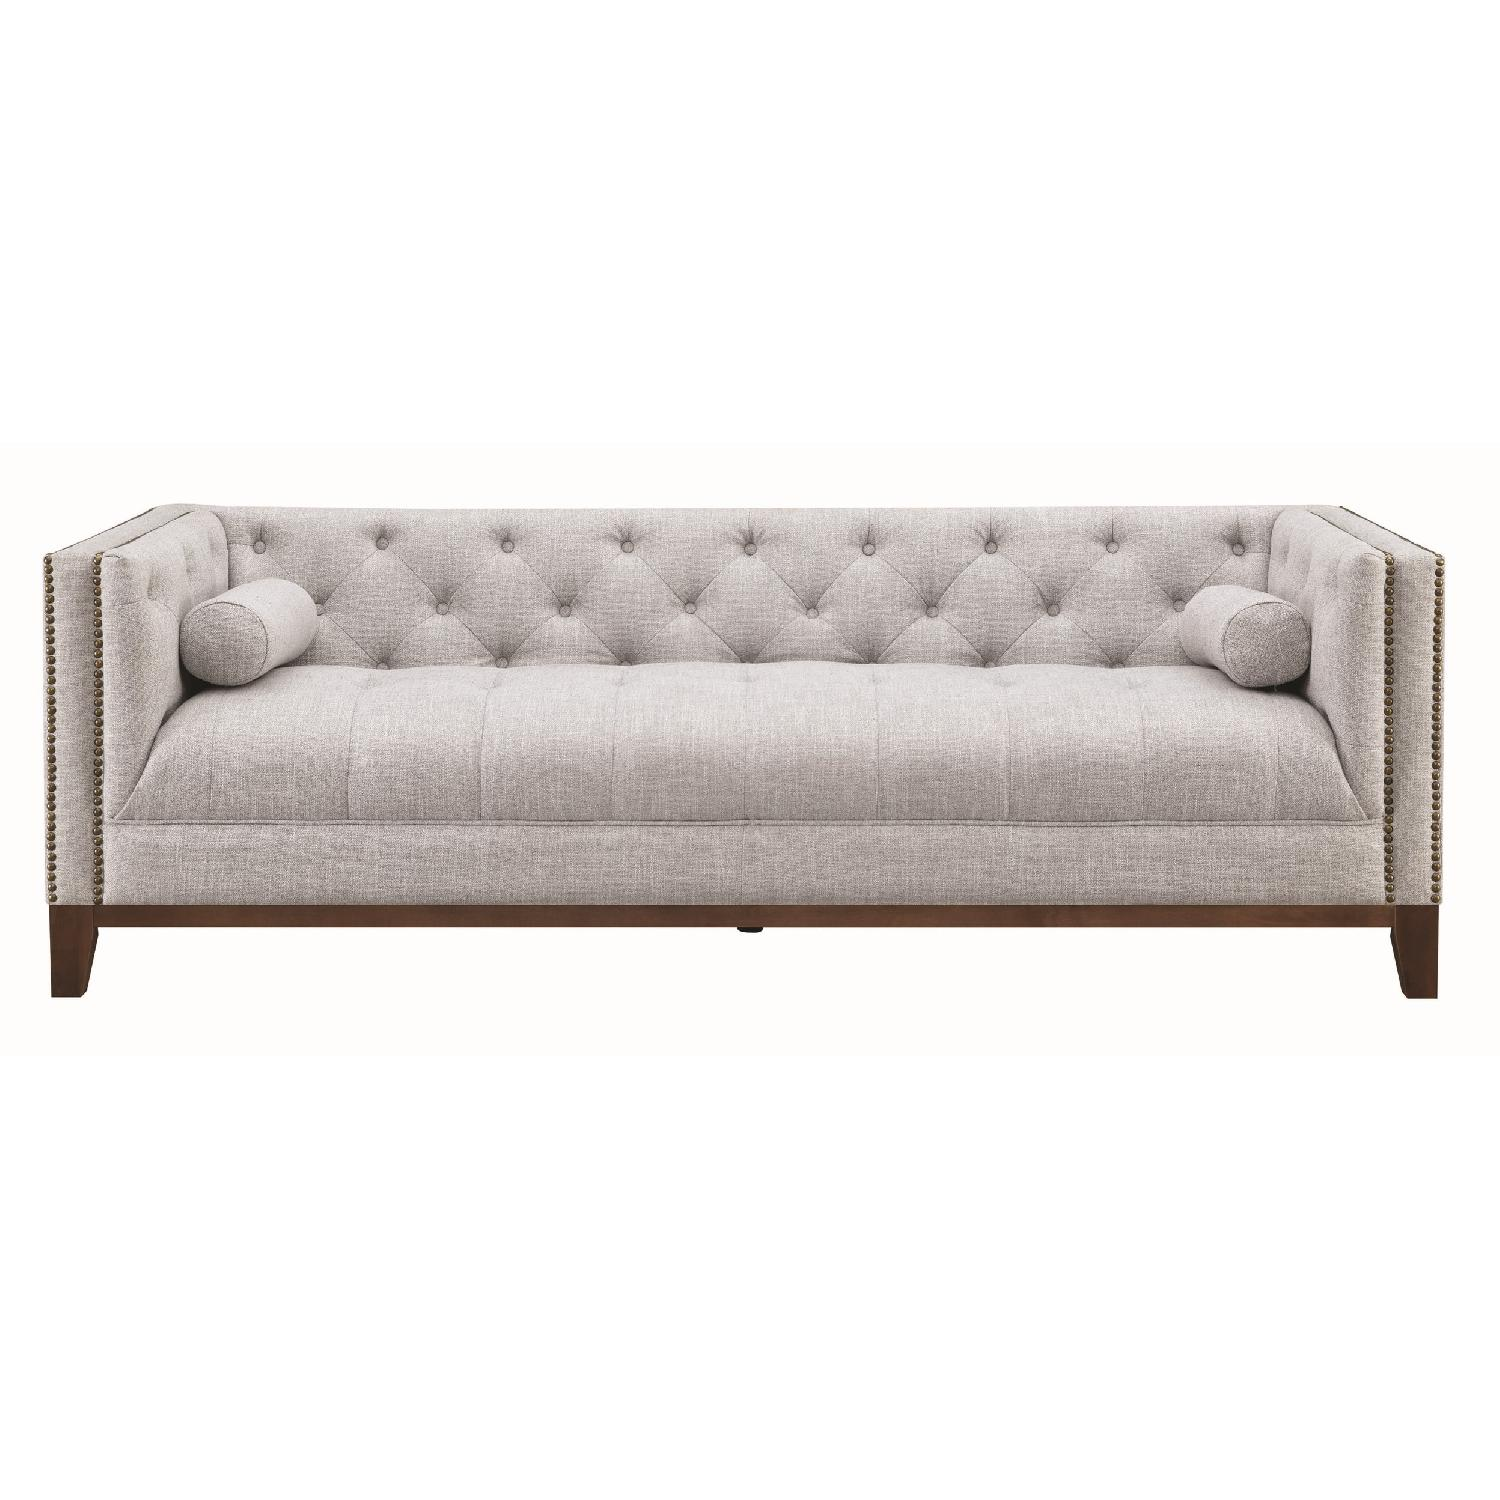 Modern Style Sofa w/ Tufted Buttons & Nailhead Accent - image-1